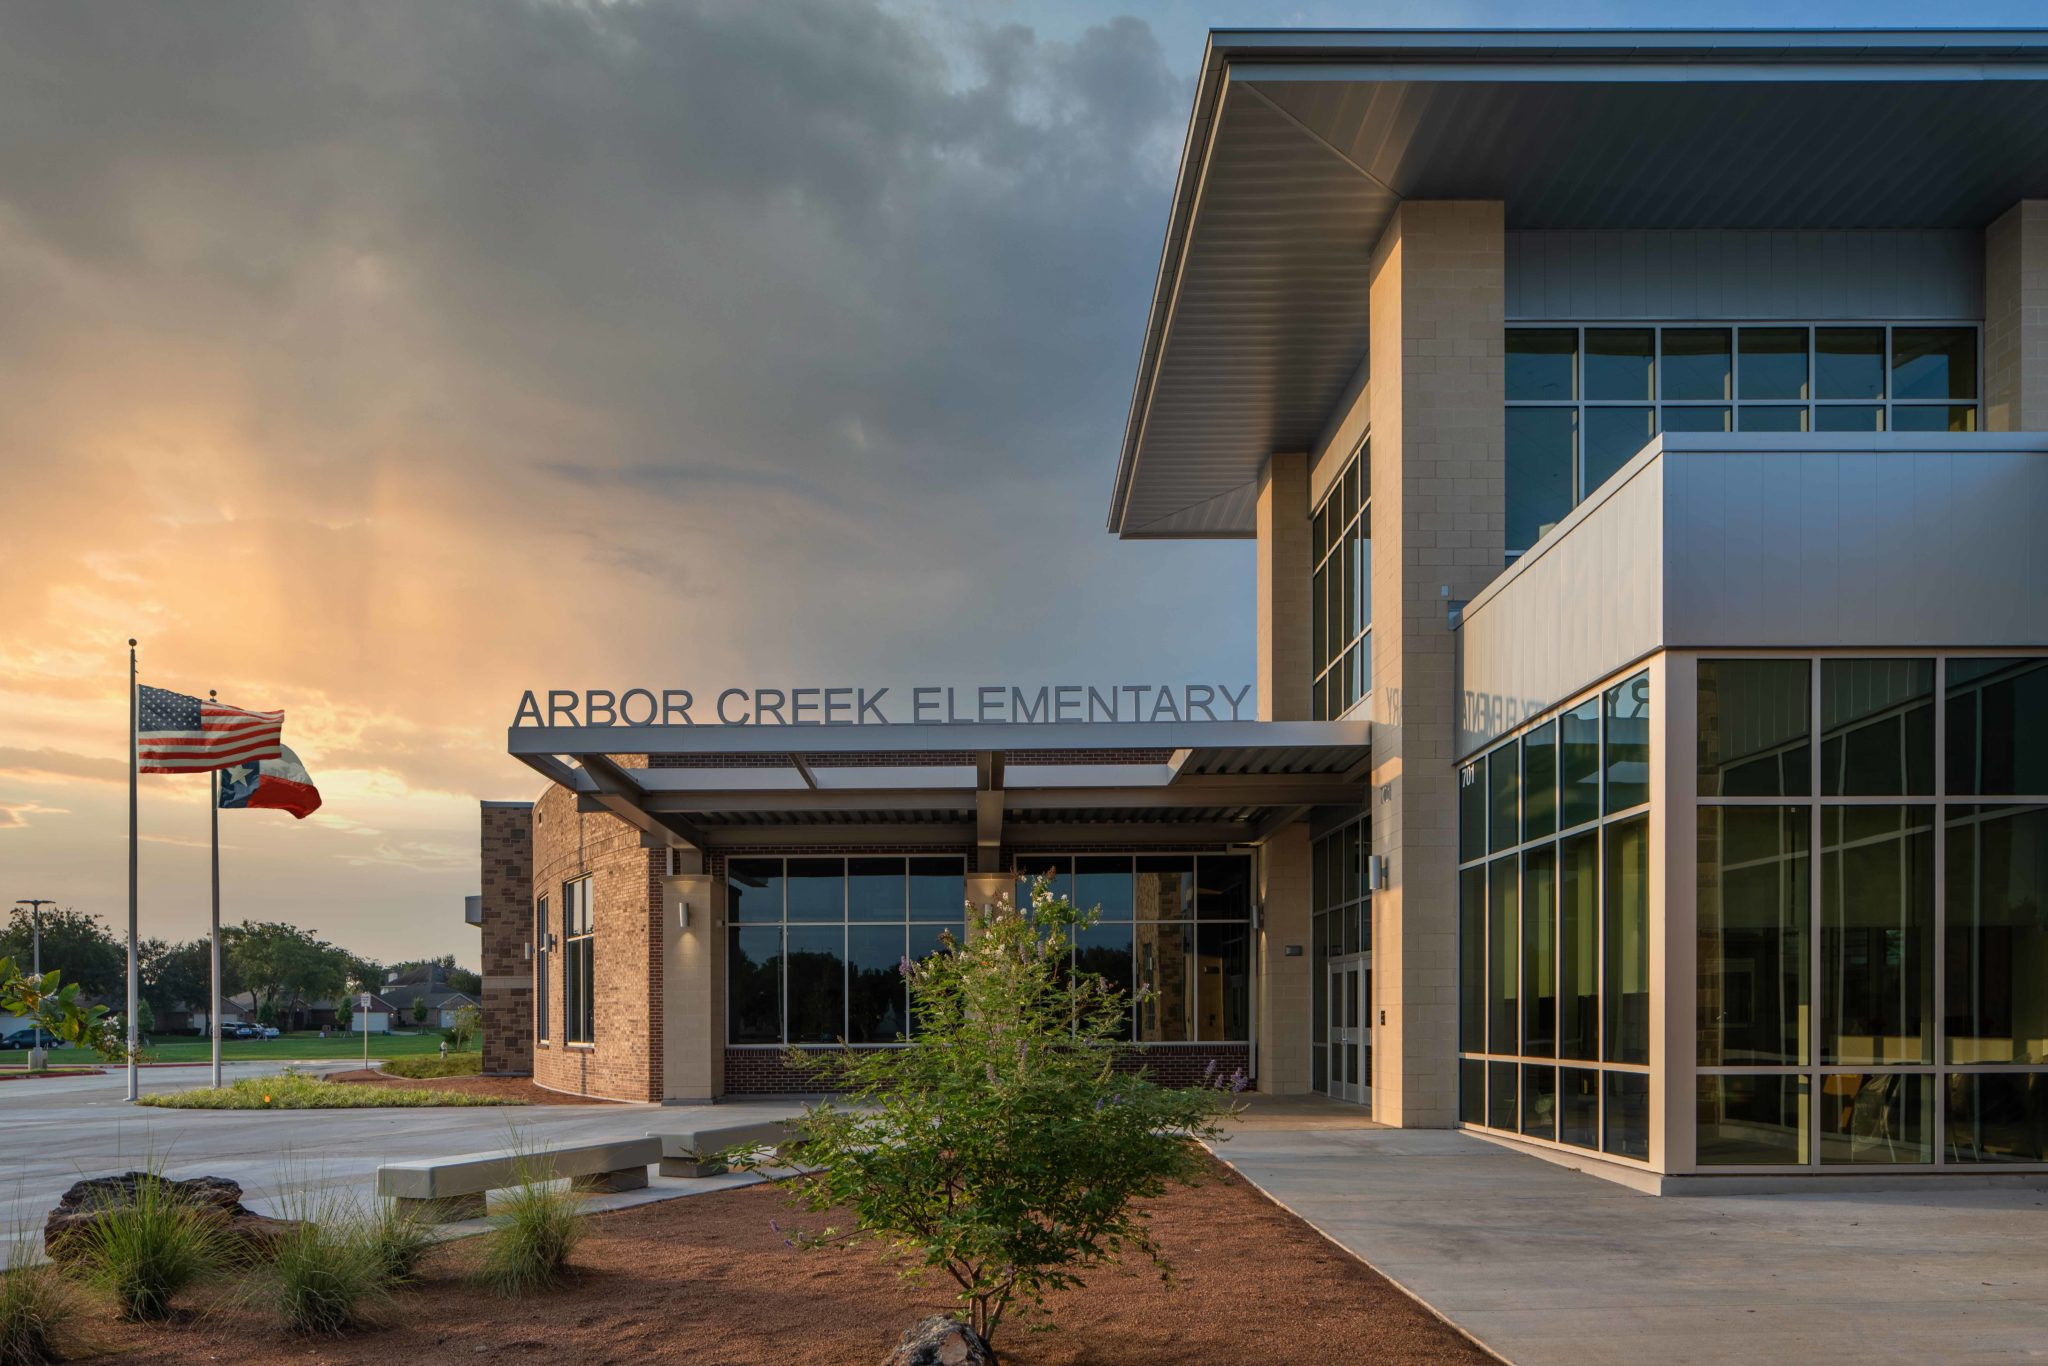 HEB ISD Arbor Creek Elementary Front Entrance at Dawn